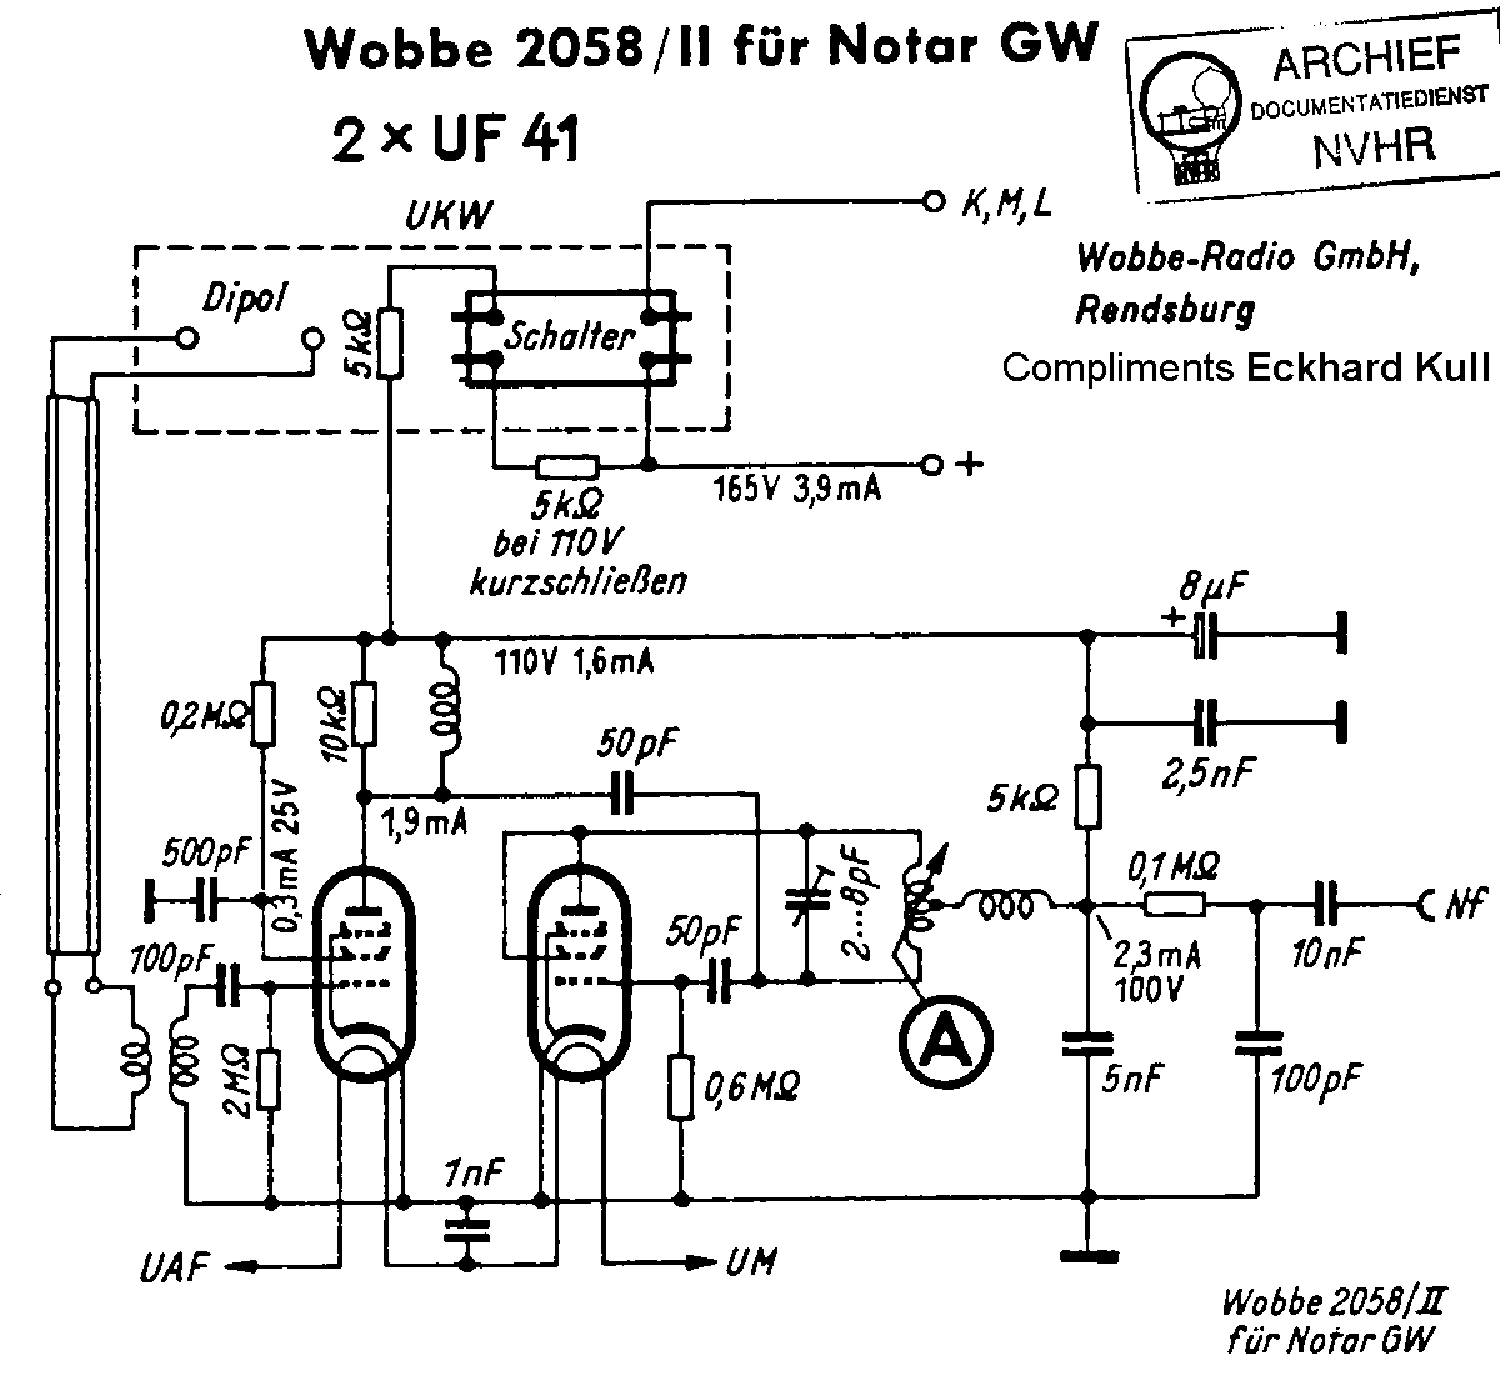 WOBBE 2058-II VHF-ADAPTER FOR NOTAR-GW SCH Service Manual